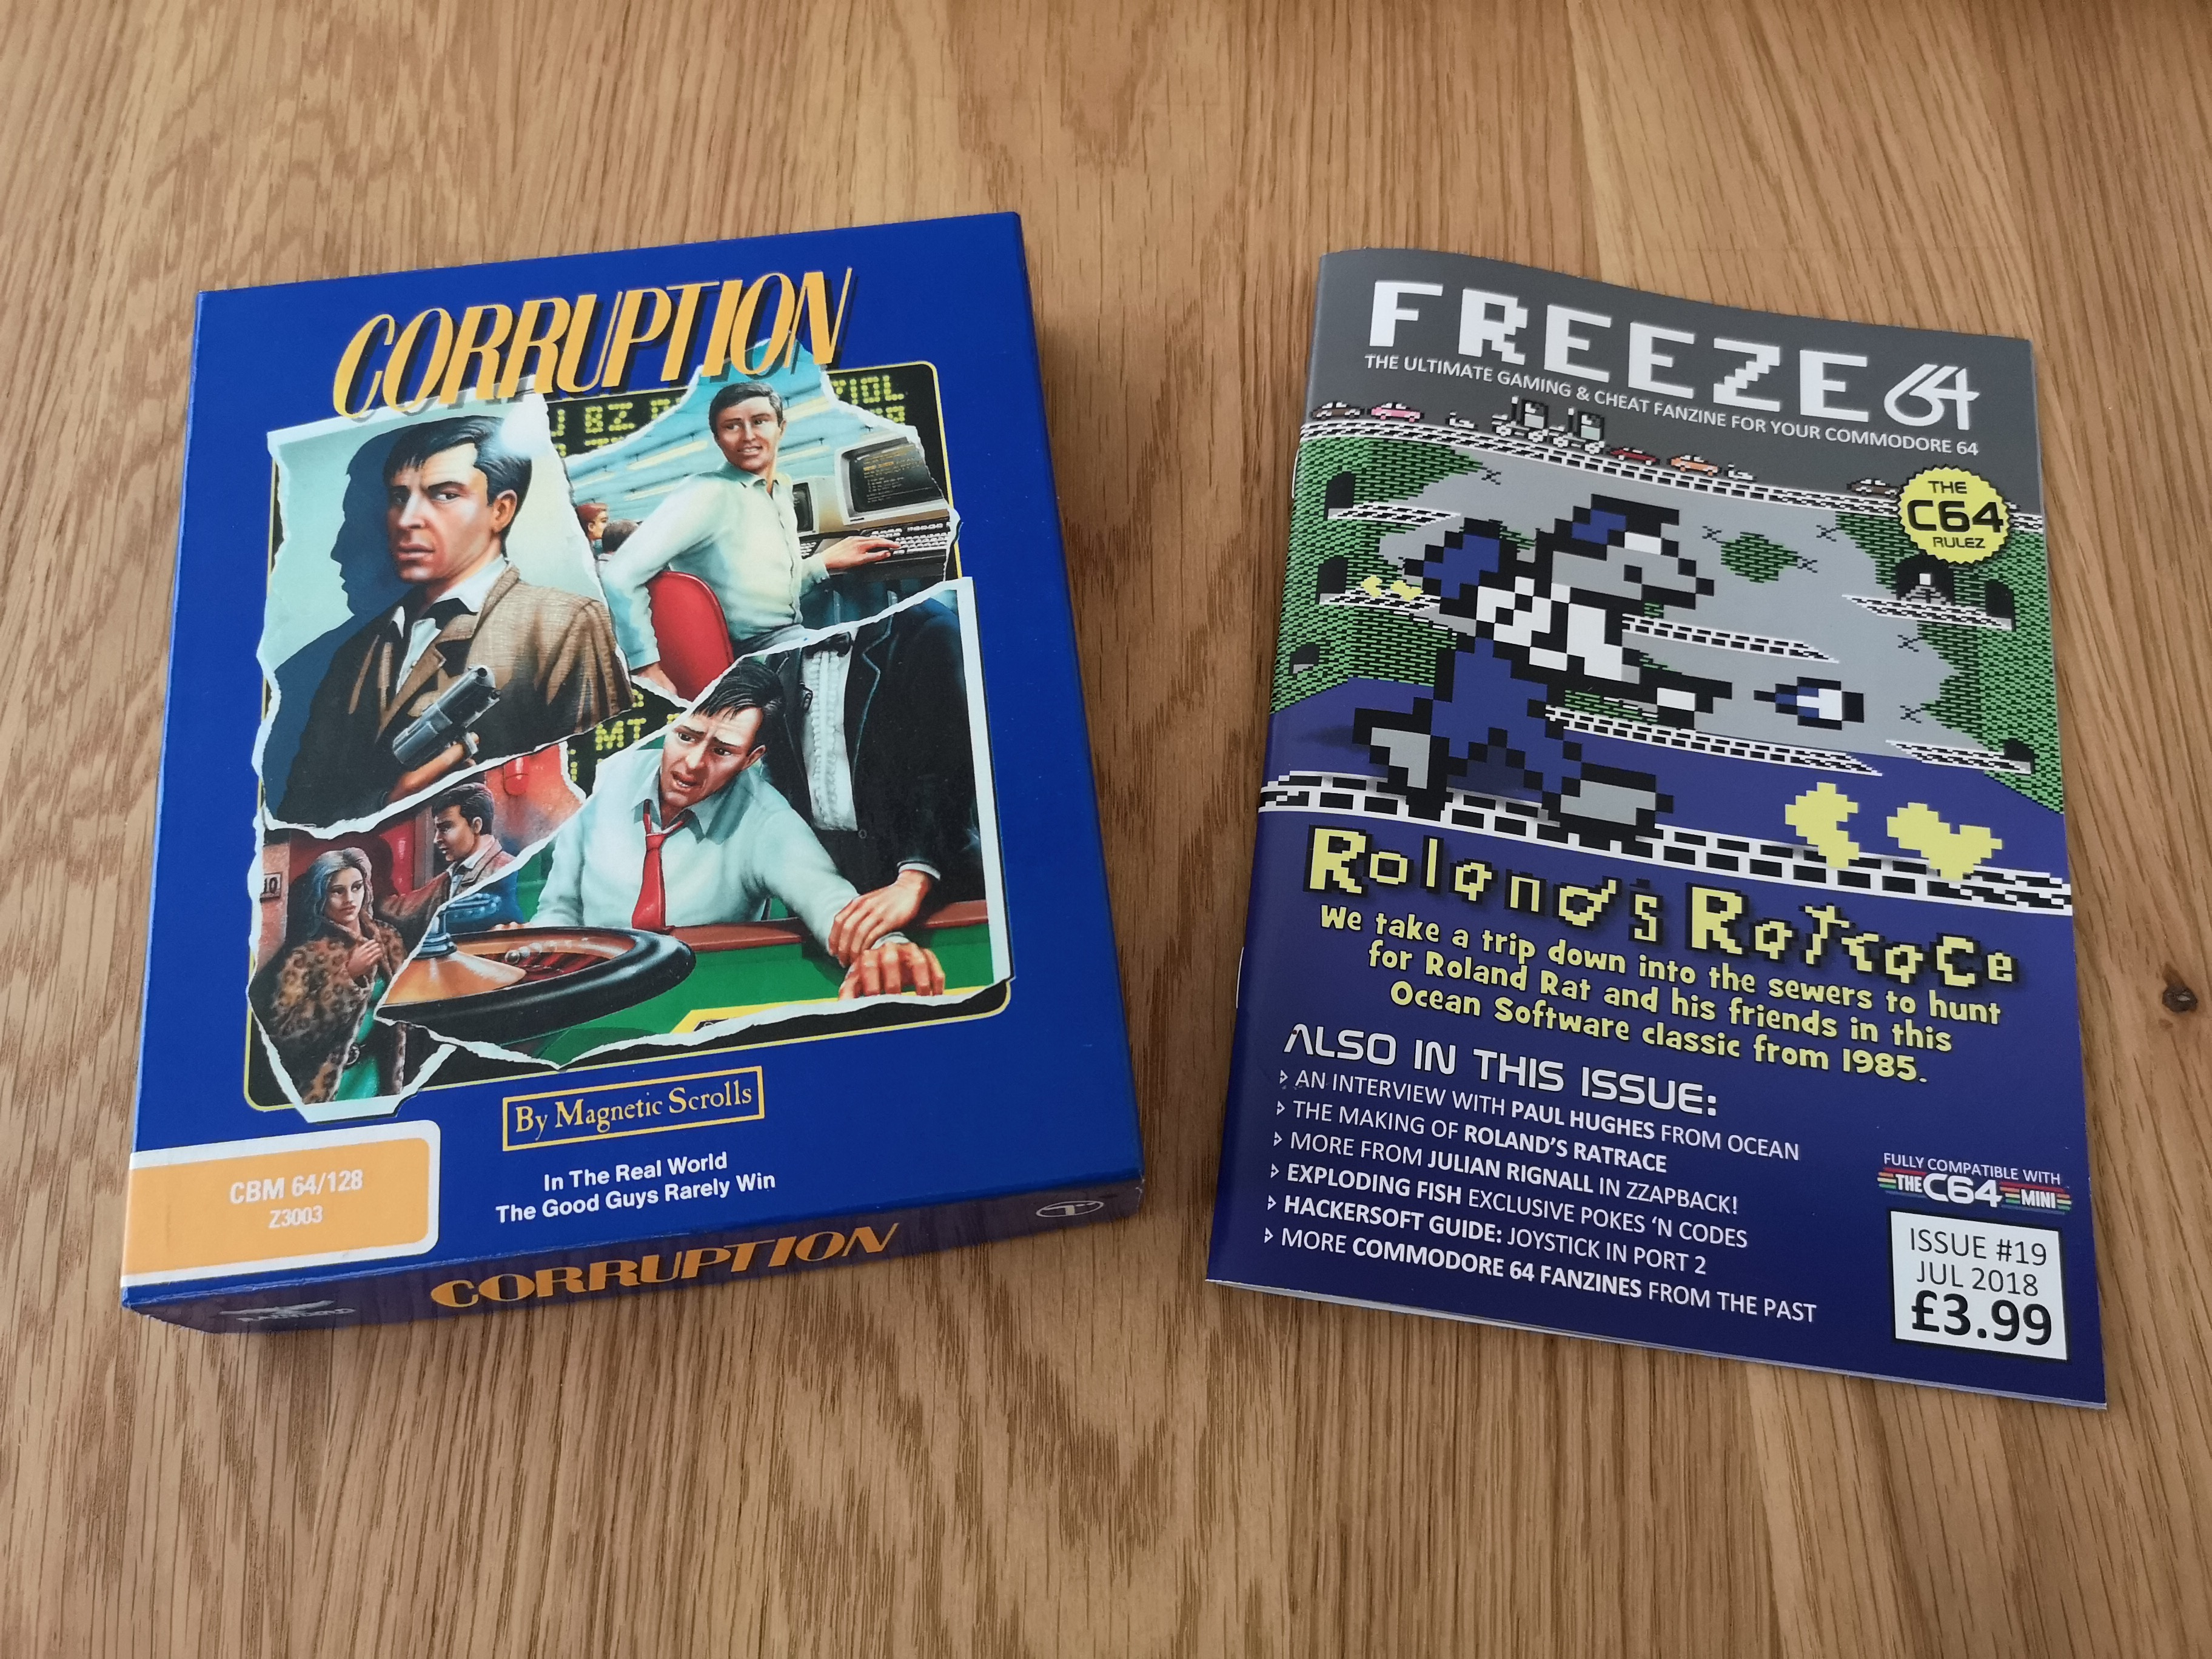 Freeze64 & Corruption